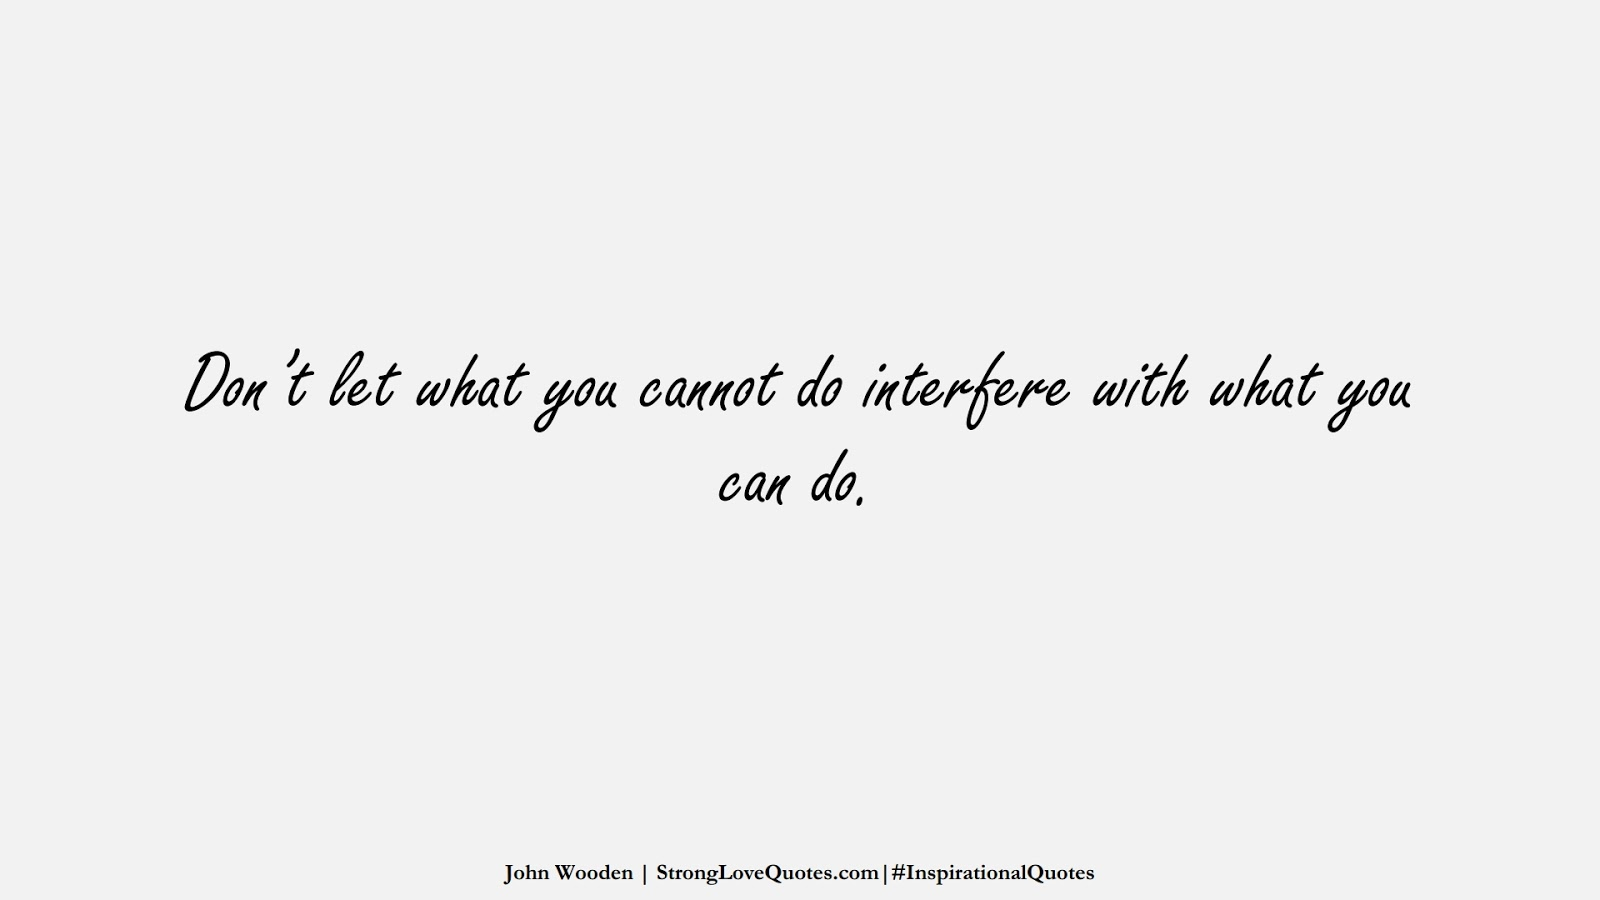 Don't let what you cannot do interfere with what you can do. (John Wooden);  #InspirationalQuotes